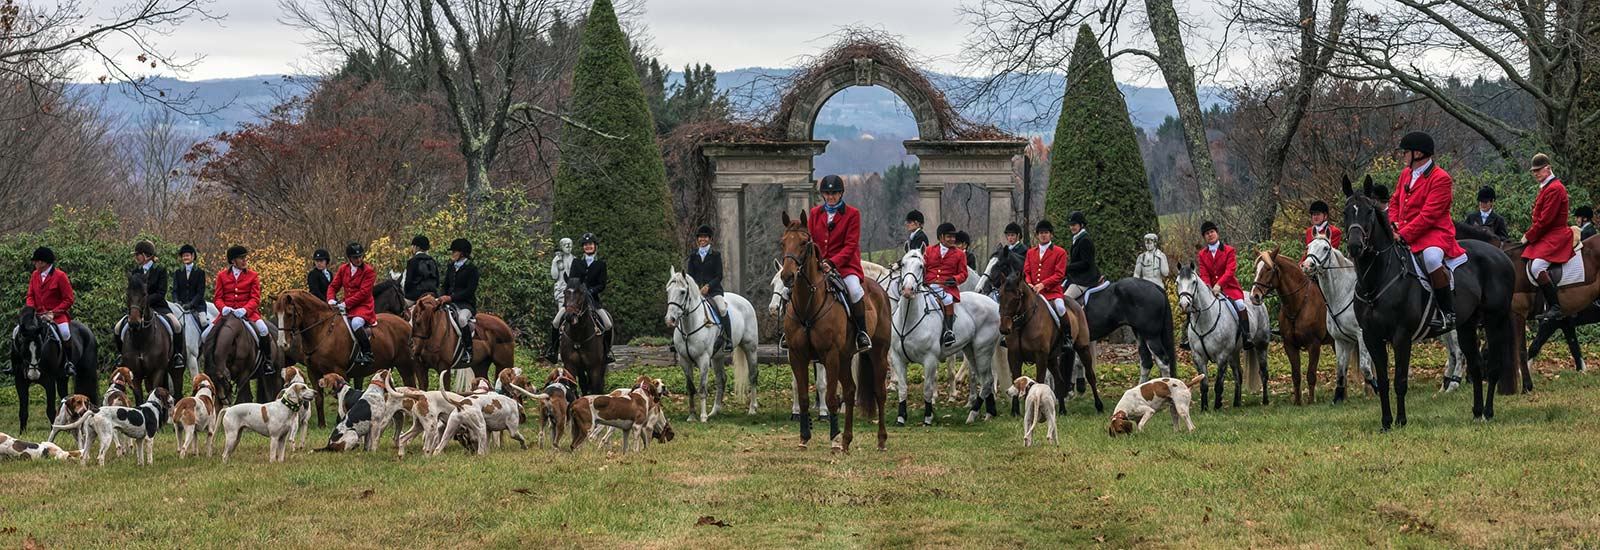 Hunters on horseback with dogs at Millbrook Hunt